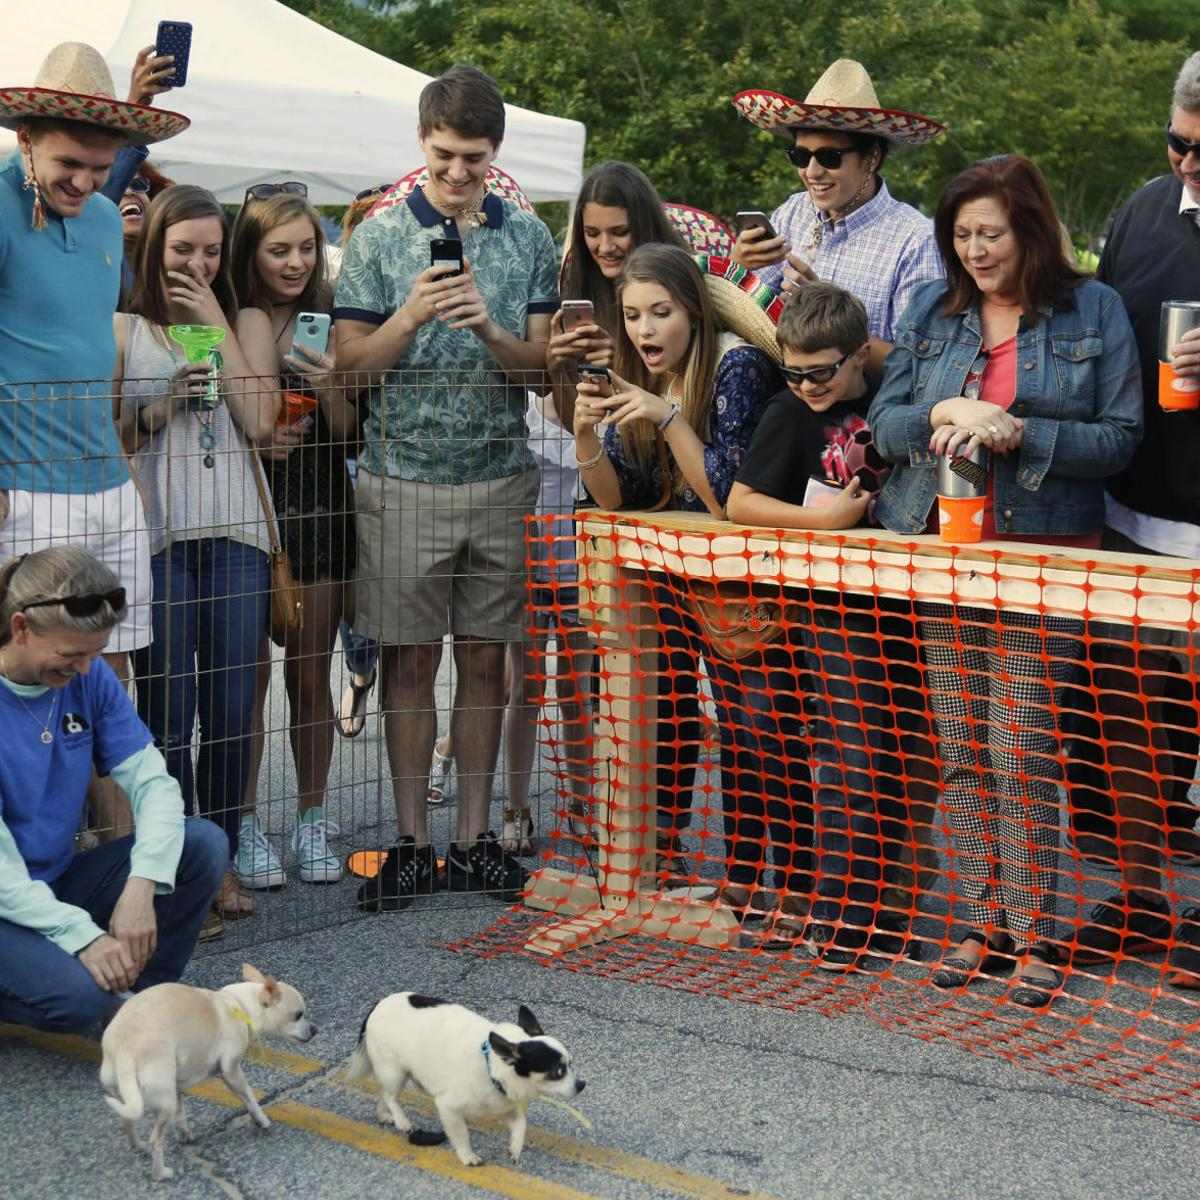 Cinco De Mayo Fiesta will feature music, food and Chihuahua